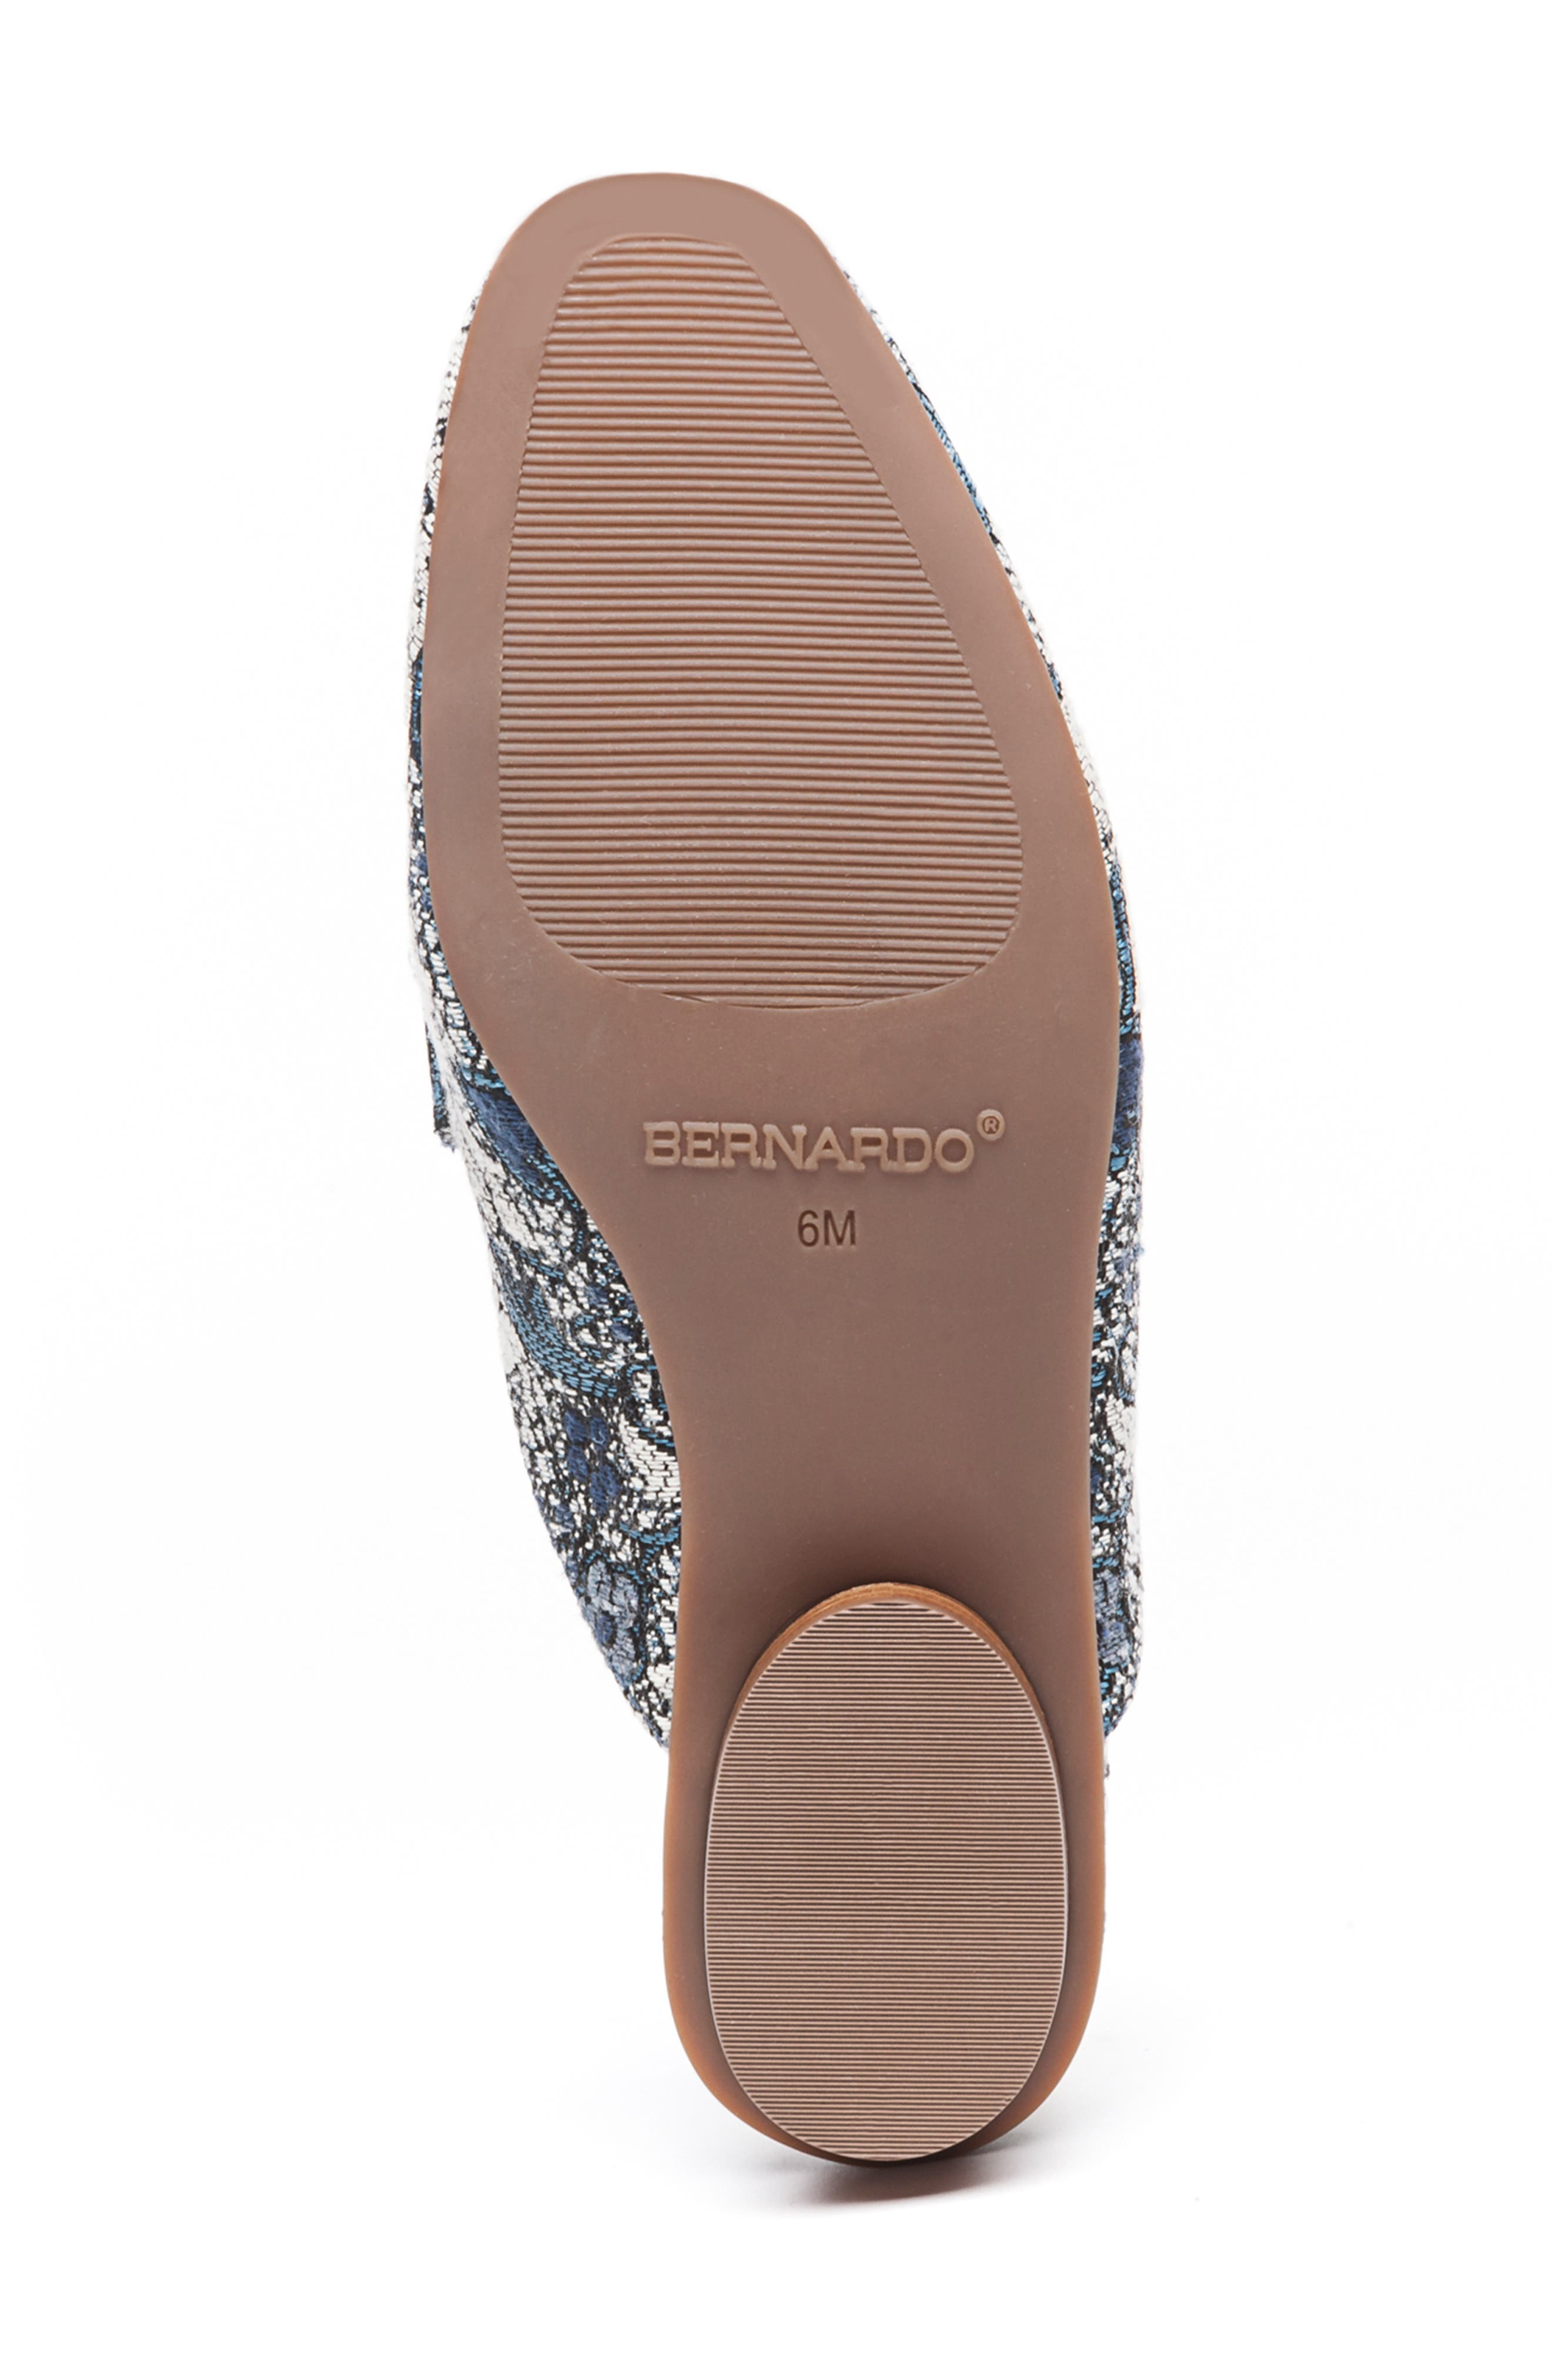 Bernardo Jen Mule,                             Alternate thumbnail 6, color,                             BLUE JACQUARD LEATHER